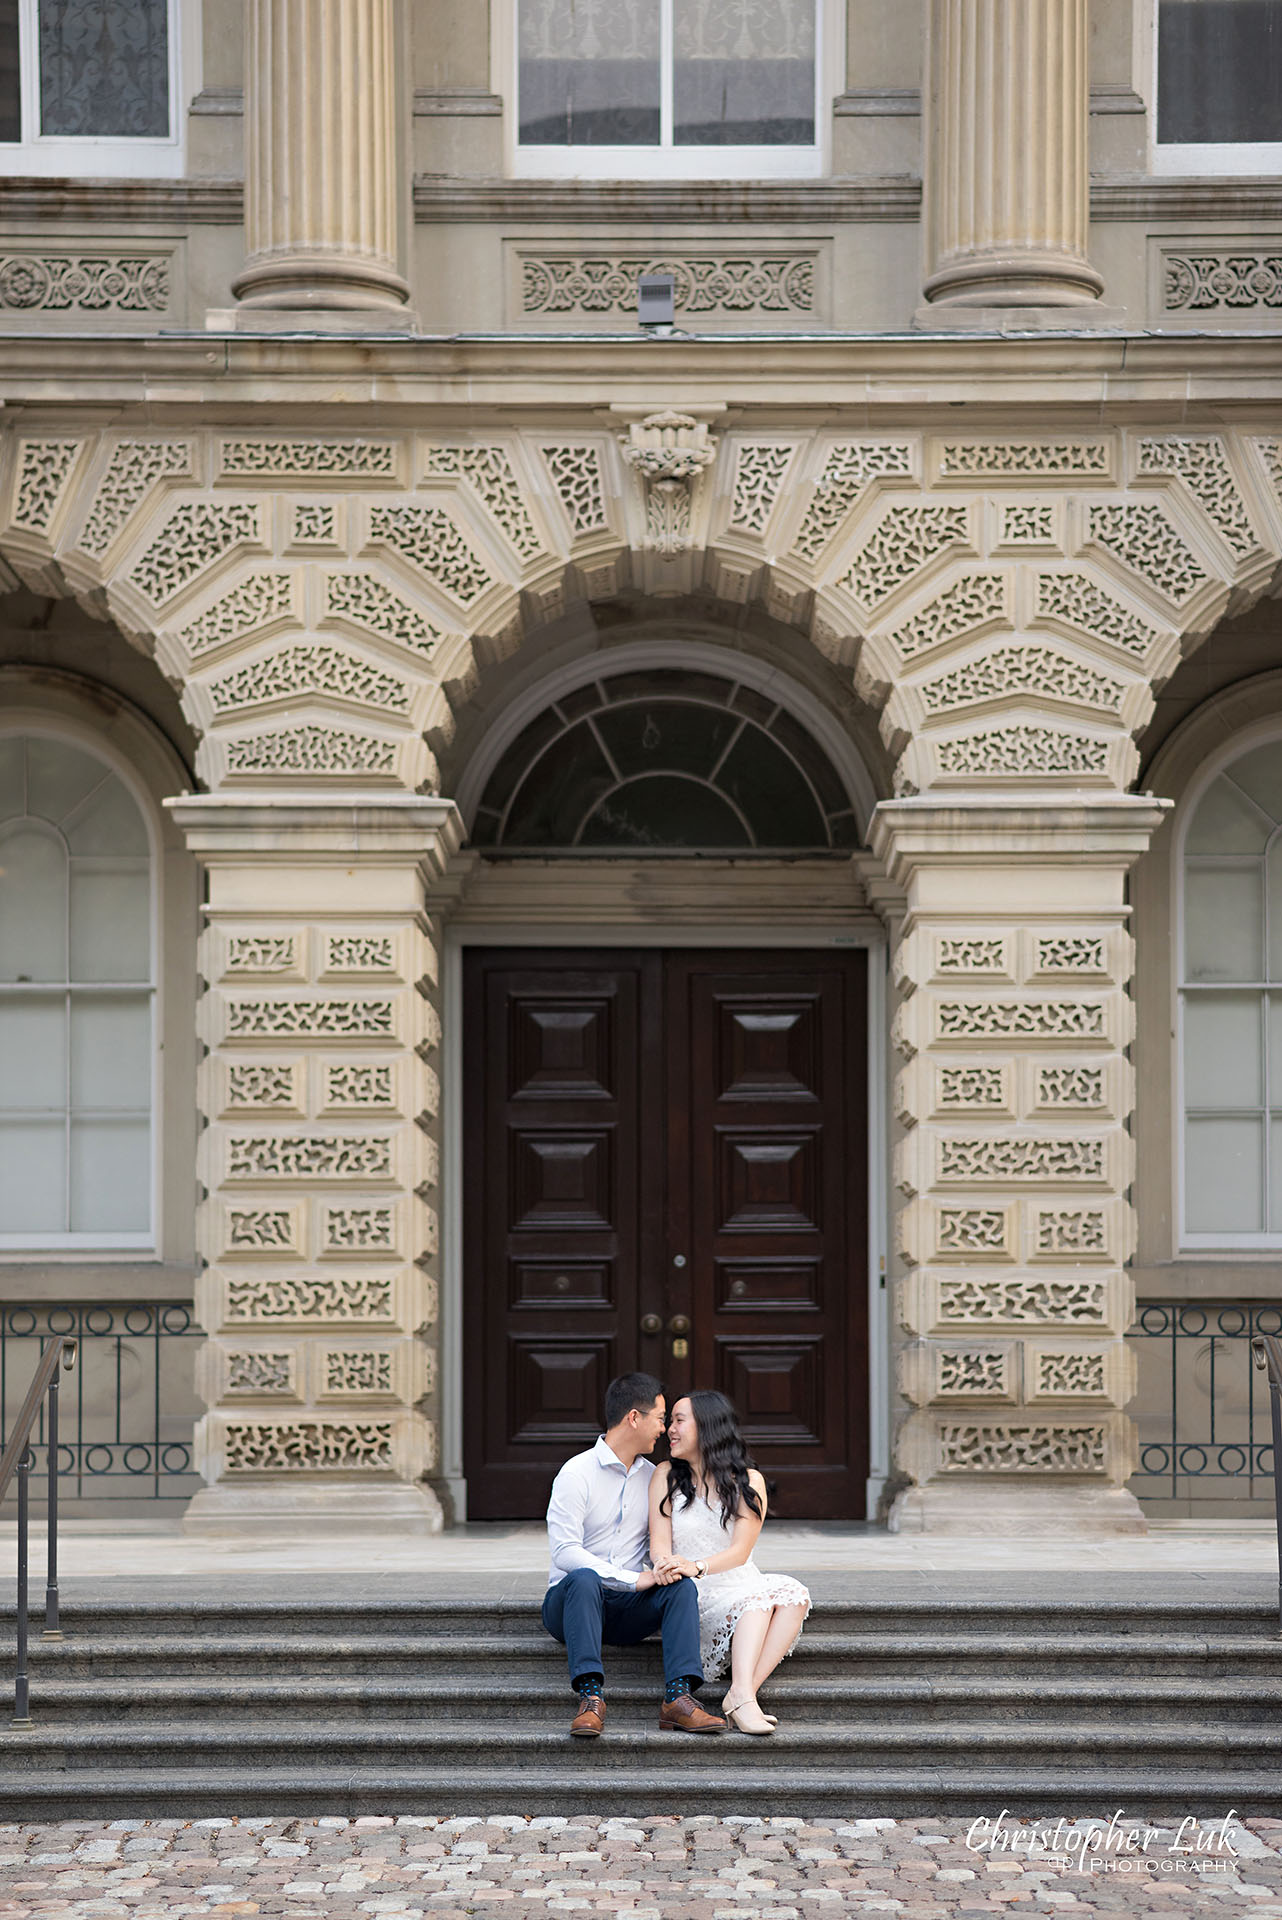 Christopher Luk Wedding Photographer Osgoode Hall Toronto Bride Groom Main Historic Building Front Steps Holding Hands Sitting Together Portrait Christopher Luk Wedding Photographer Osgoode Hall Toronto Bride Groom Main Historic Building Front Cobblestone Holding Hands Walking Together Looking at Each Other Portrait Natural Candid Photojournalistic